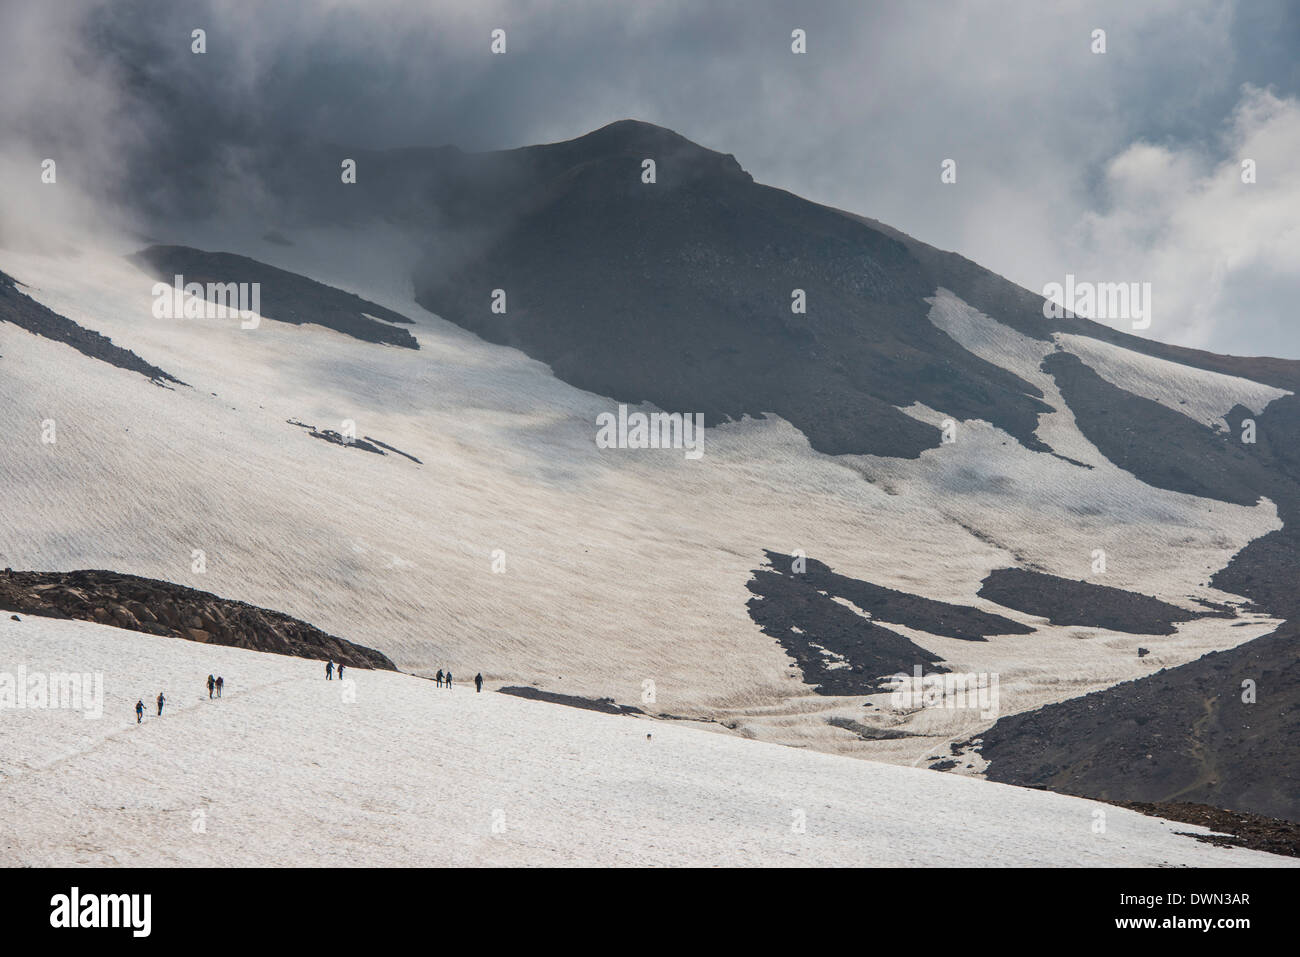 Tourists crossing a snowfield, Mutnovsky volcano, Kamchatka, Russia, Eurasia - Stock Image